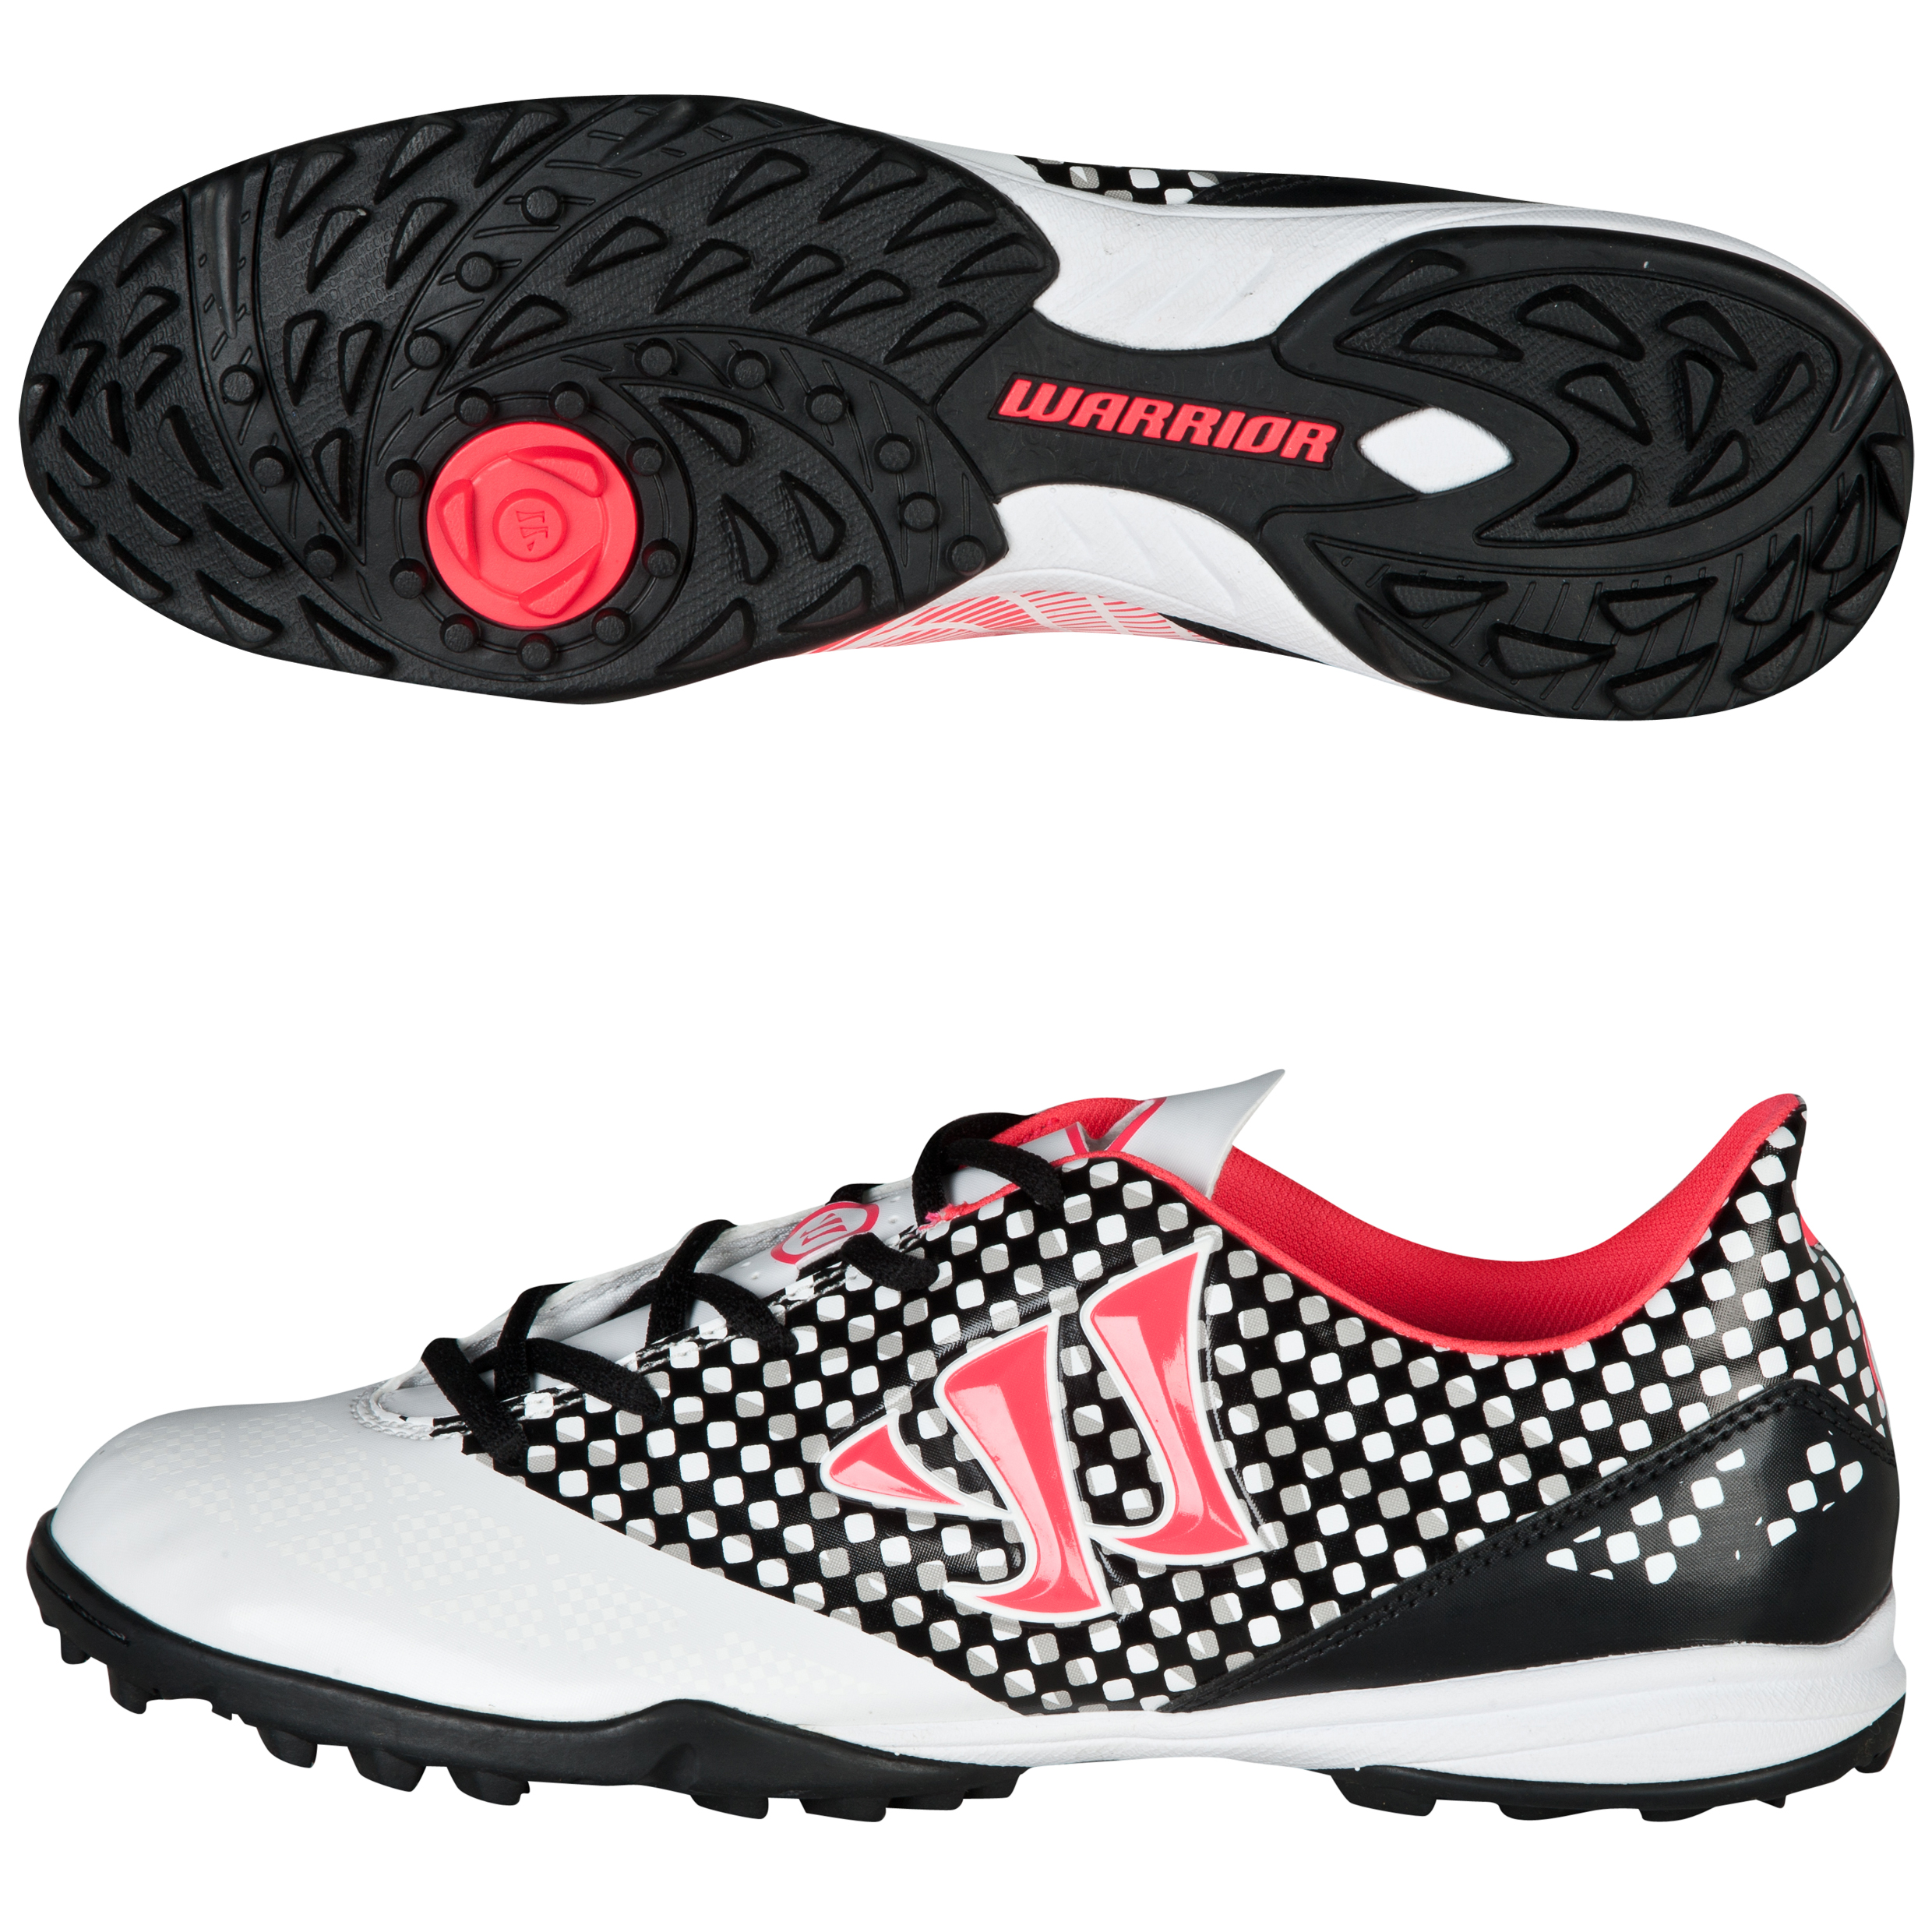 Warrior Sports Gambler Combat Astroturf Trainers-Wht/Blk/Pink White